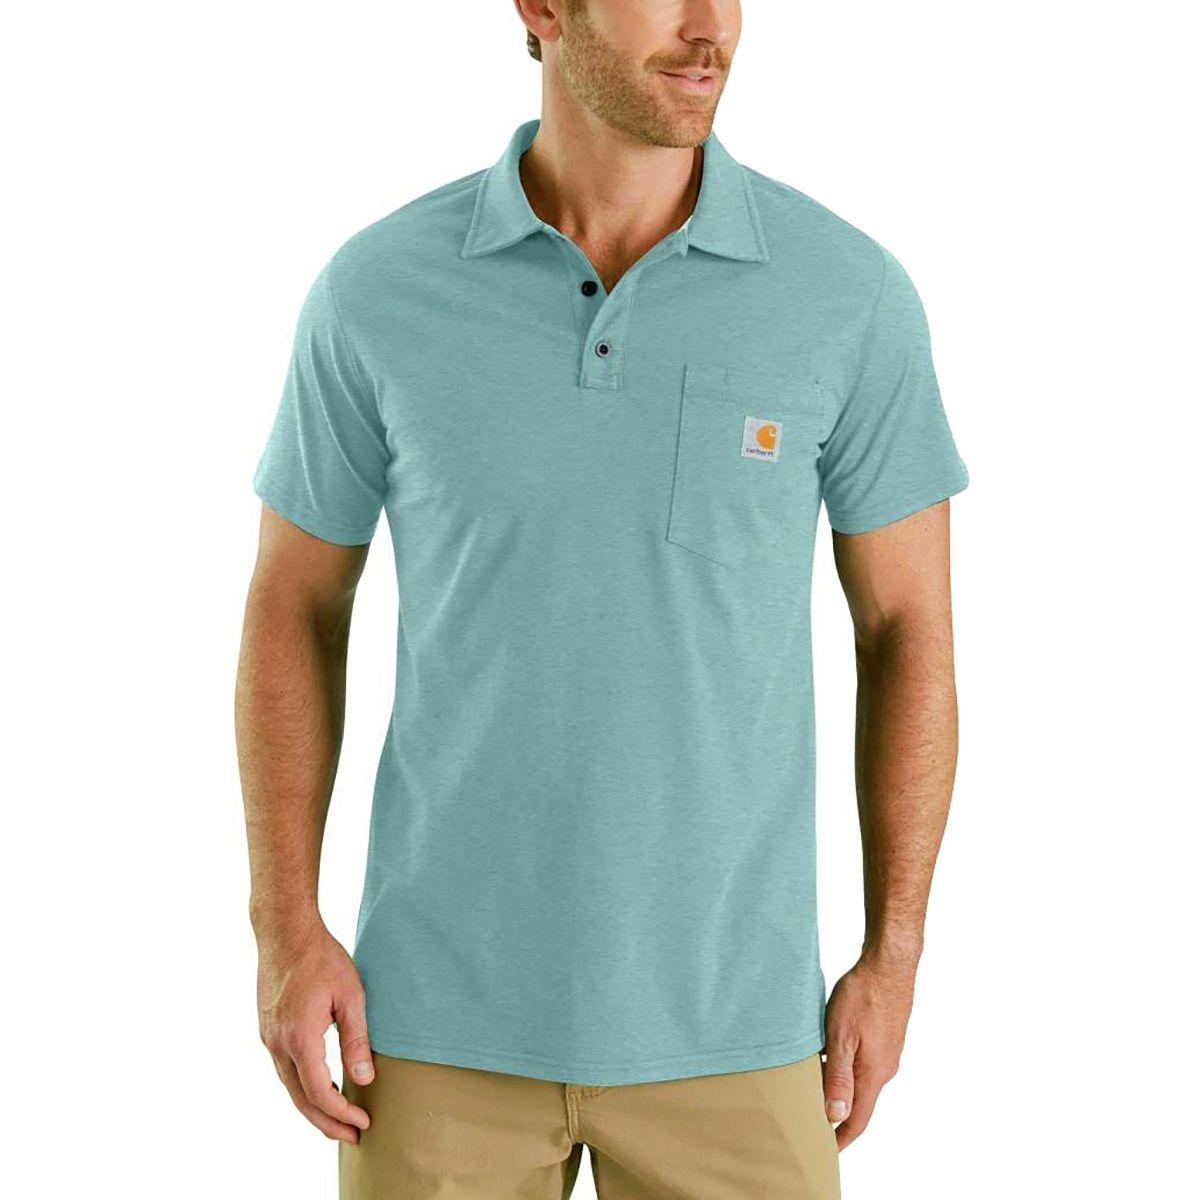 90db9c2f3f7 Lyst - Carhartt Force Cotton Delmont Pocket Polo Shirt in Blue for Men